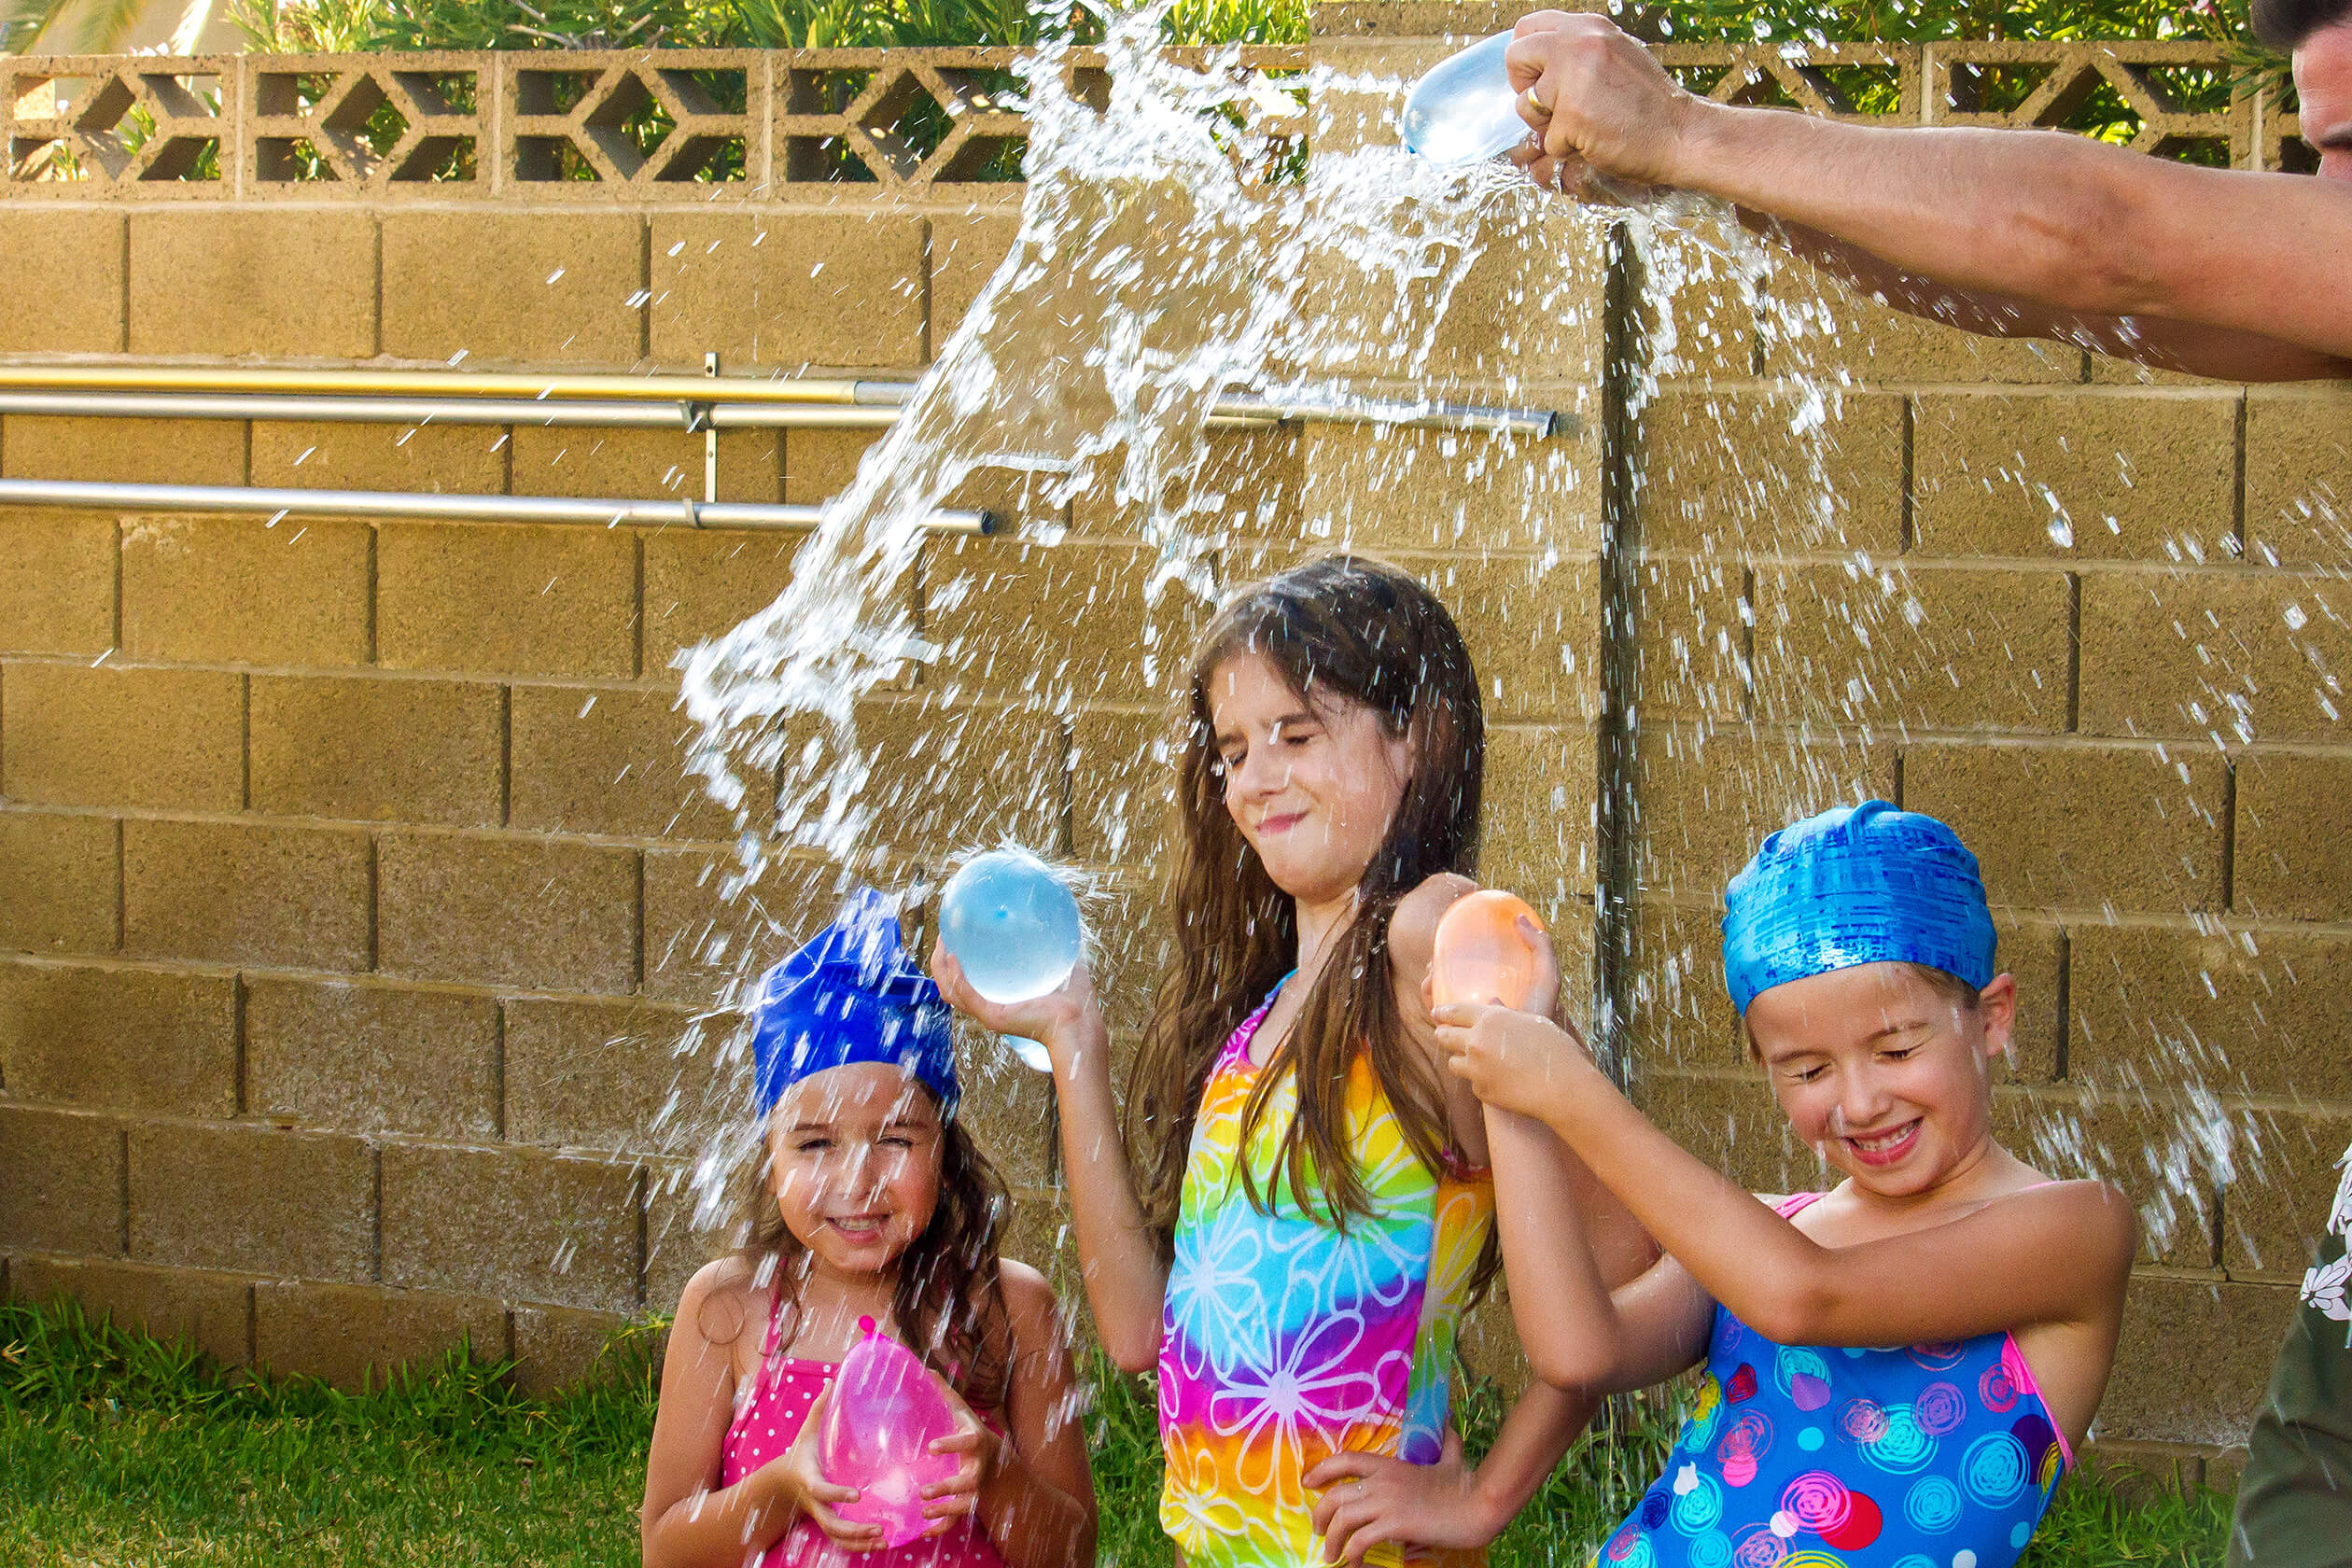 The arms of a father break a blue water balloon over the heads of his three daughters. The girls are wearing bathing suits and two of them have swim caps on.